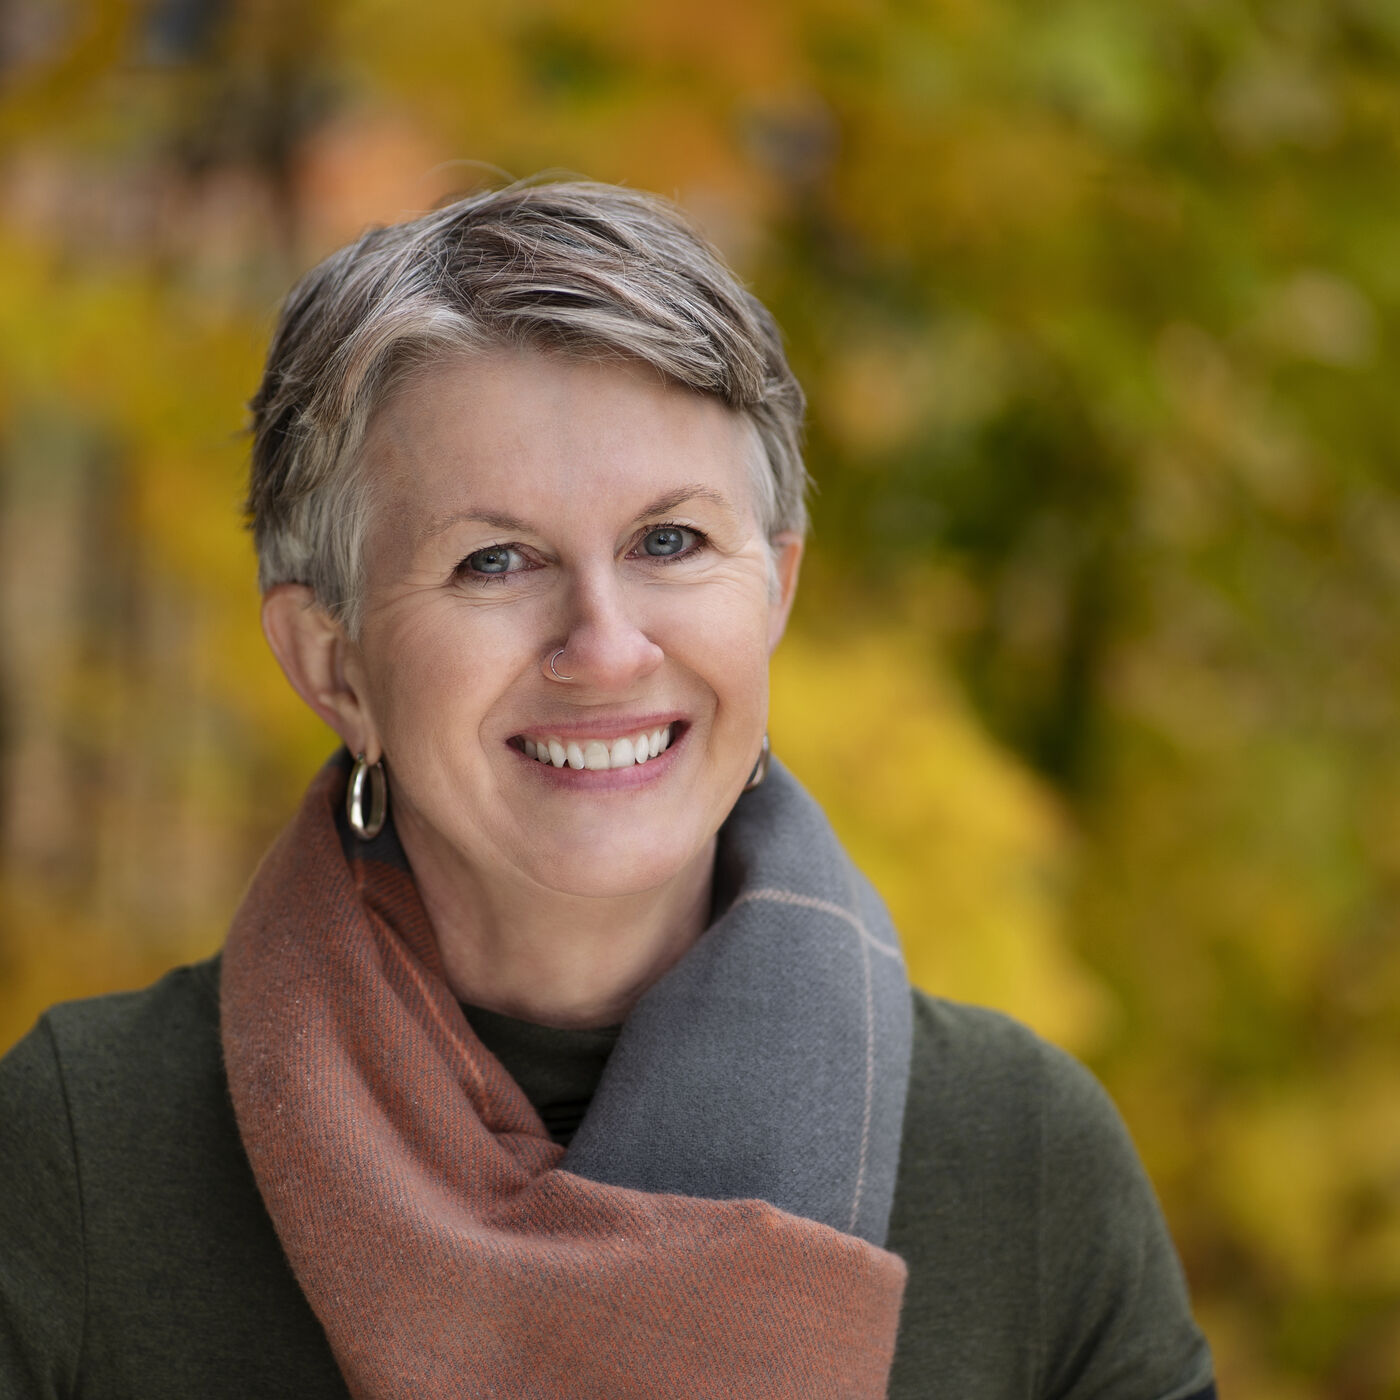 Episode 12: Valerie Trew on Whole-food, Plant-based Nutrition for Children